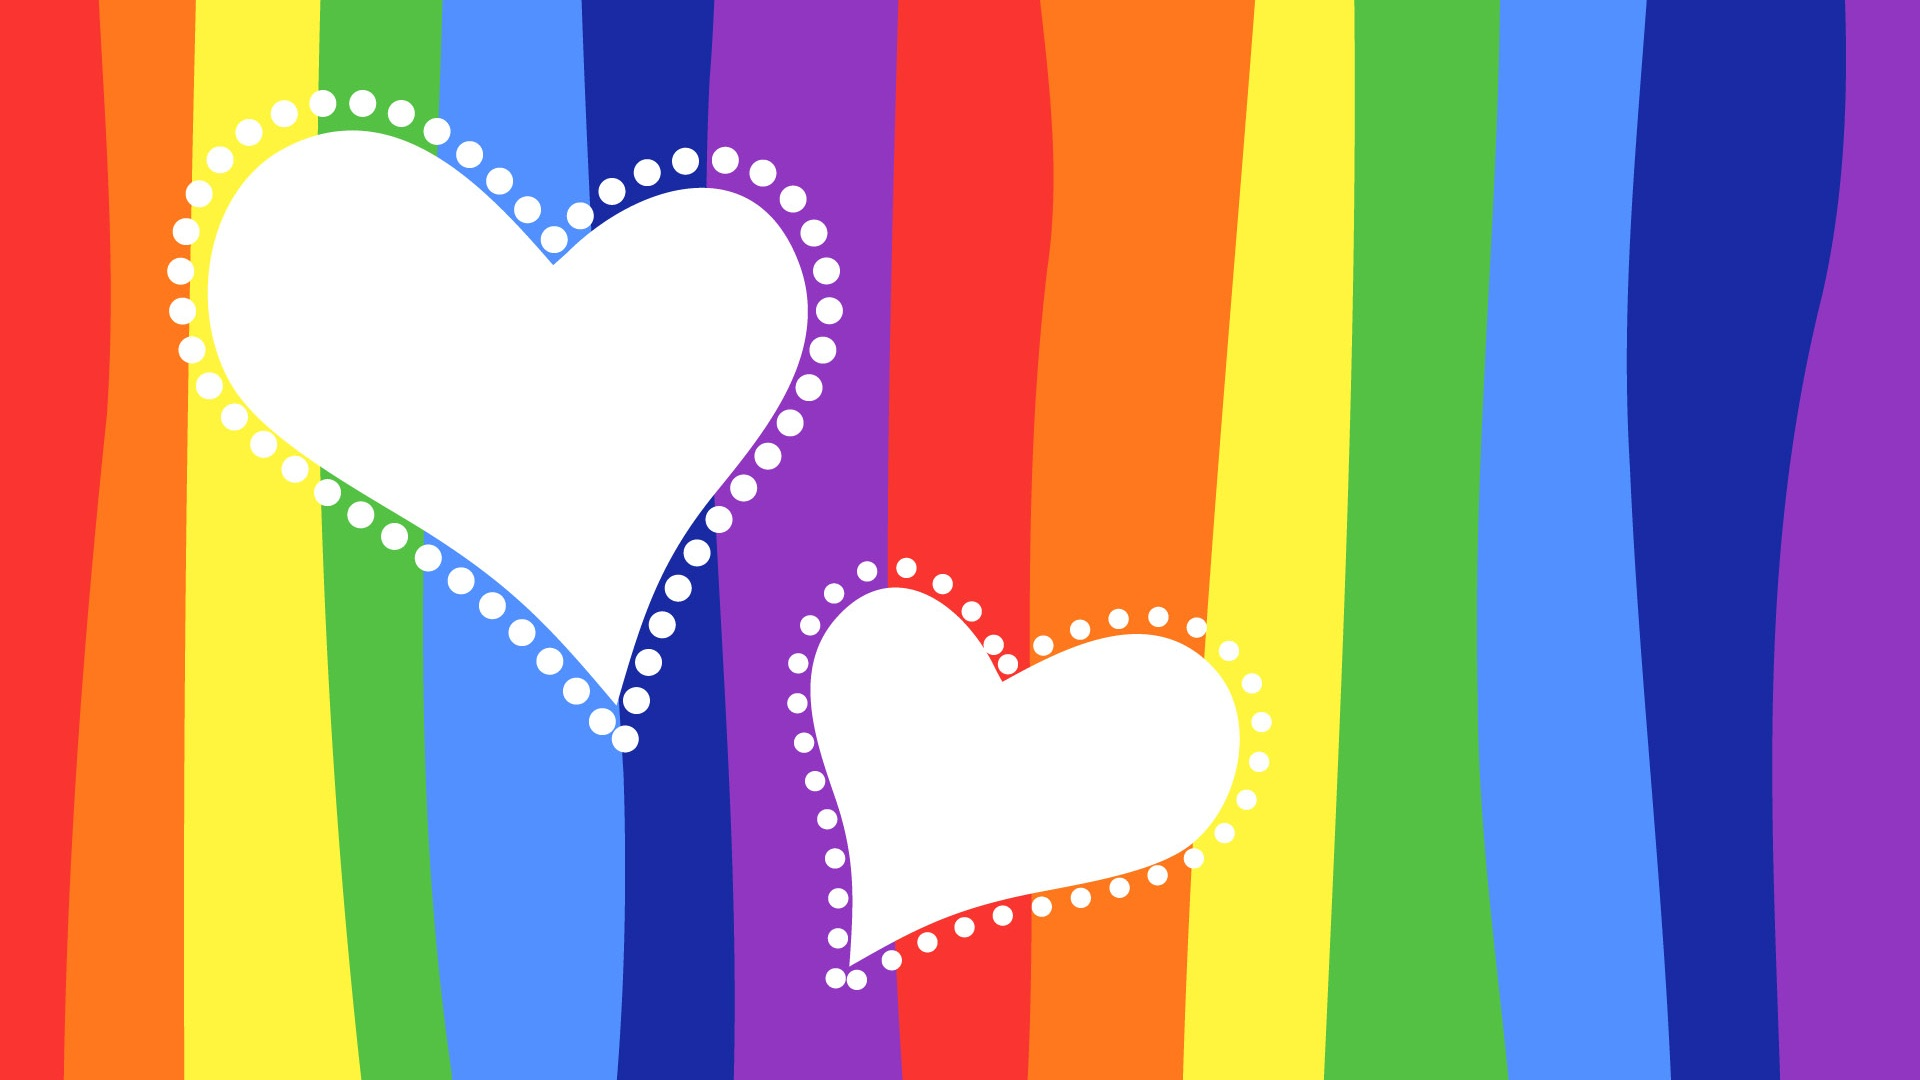 Colorful Background Love Heart Wallpaper | 1920x1080 Full ...